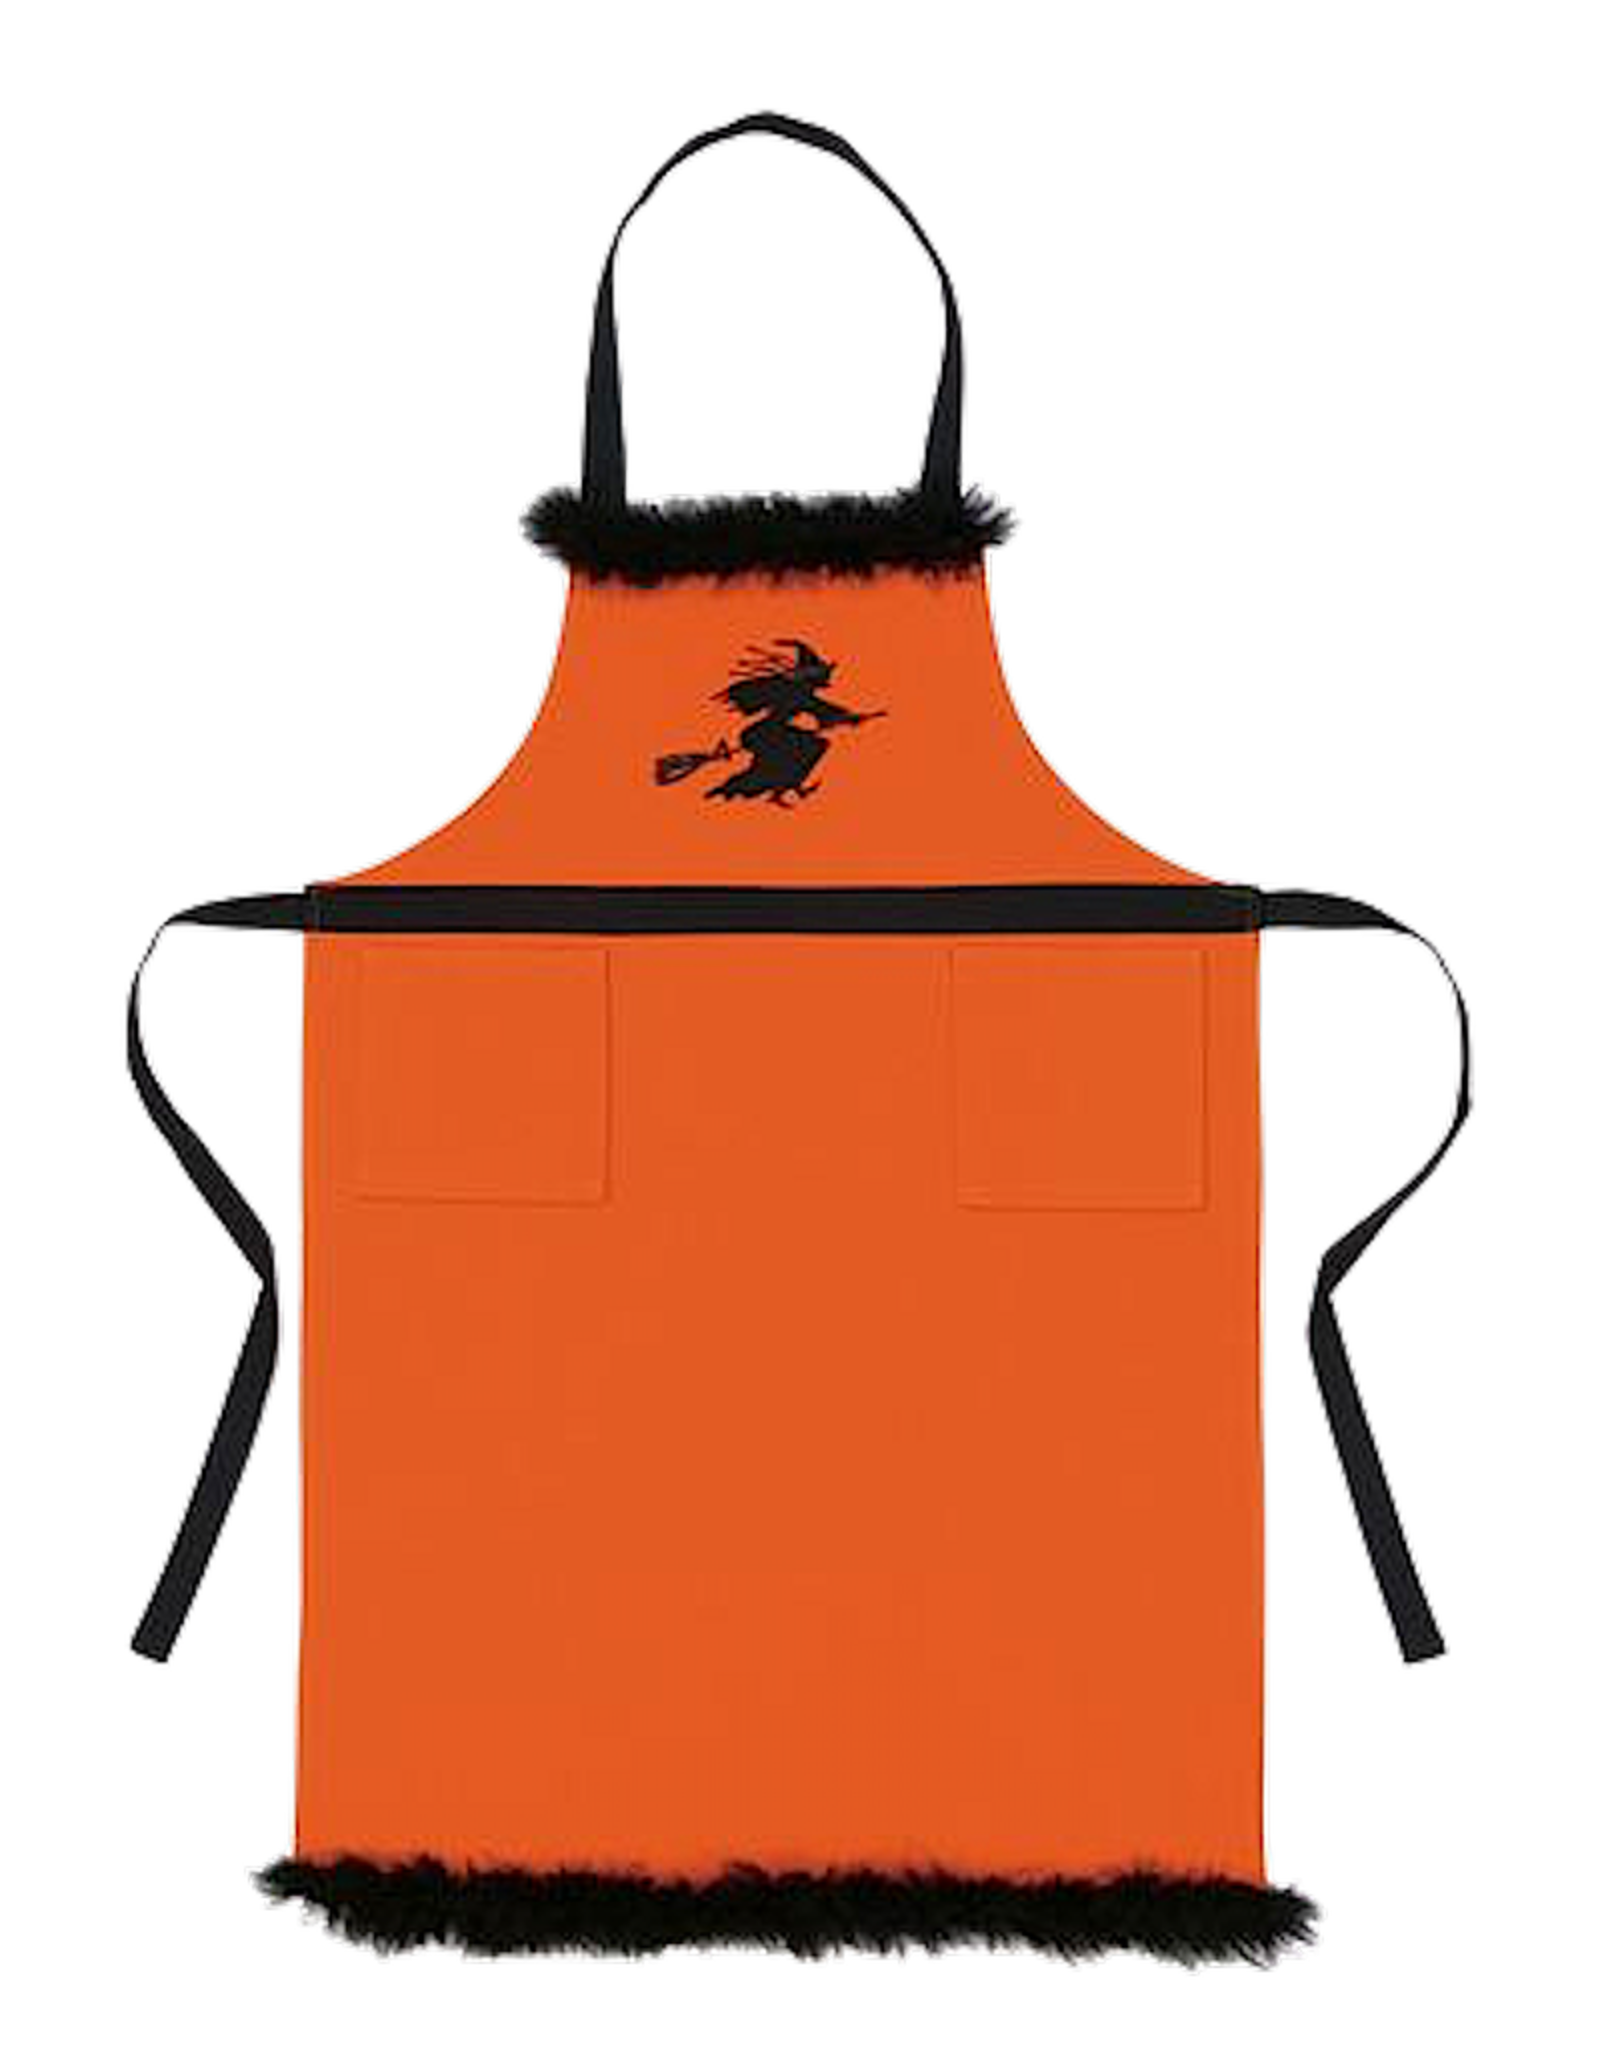 Peking Handicraft Halloween Apron Orange W Black Embroidered Flying Witch Digs N Gifts